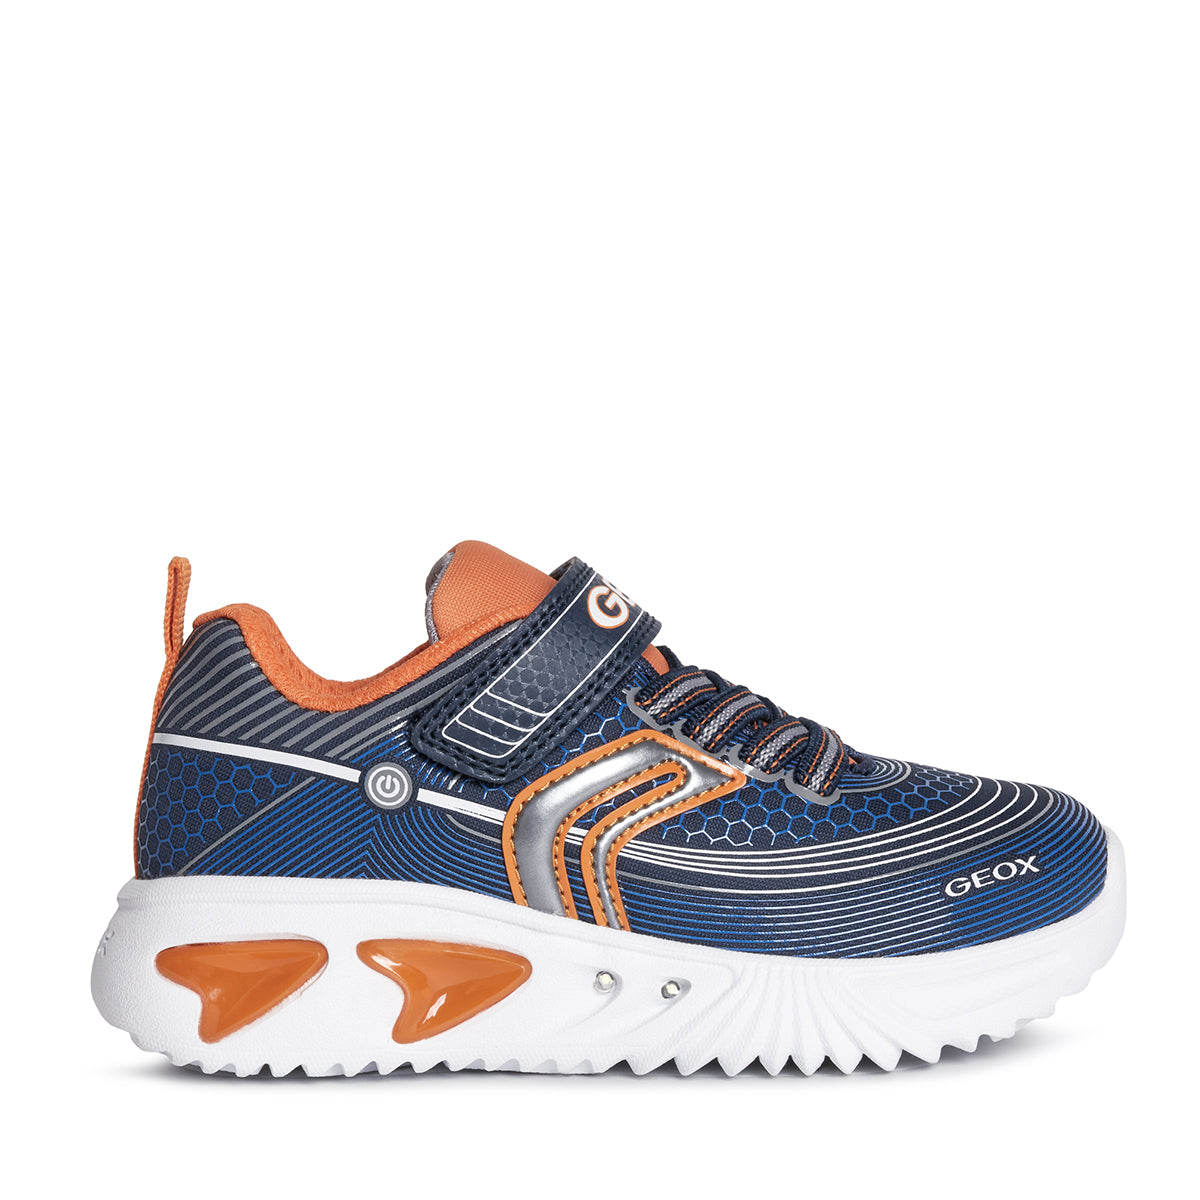 GEOX J15DZA NAVY/ORANGE